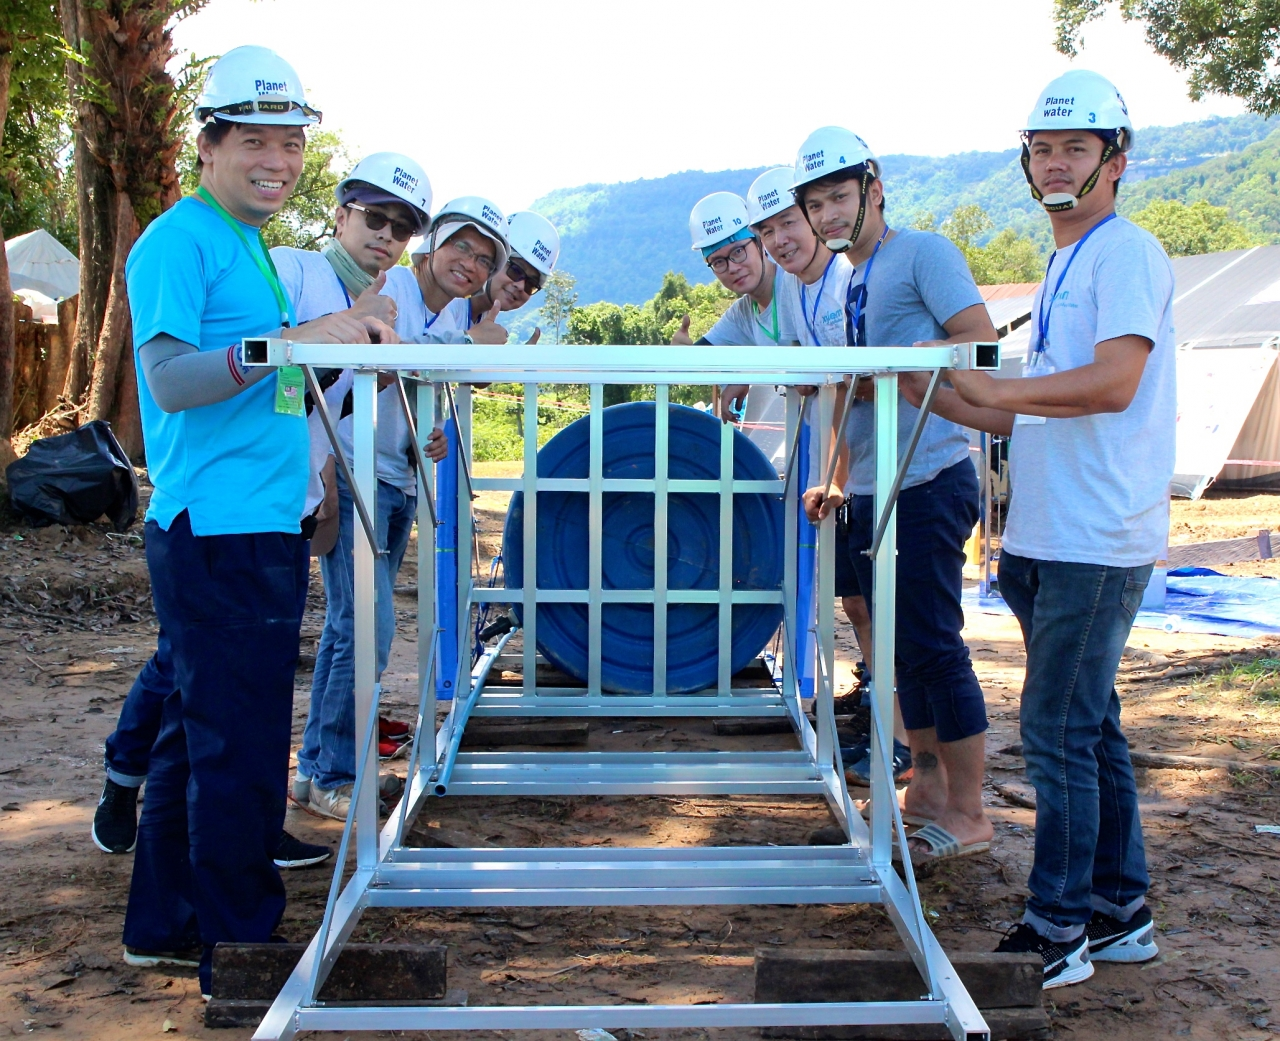 Team in Laos building a water tower